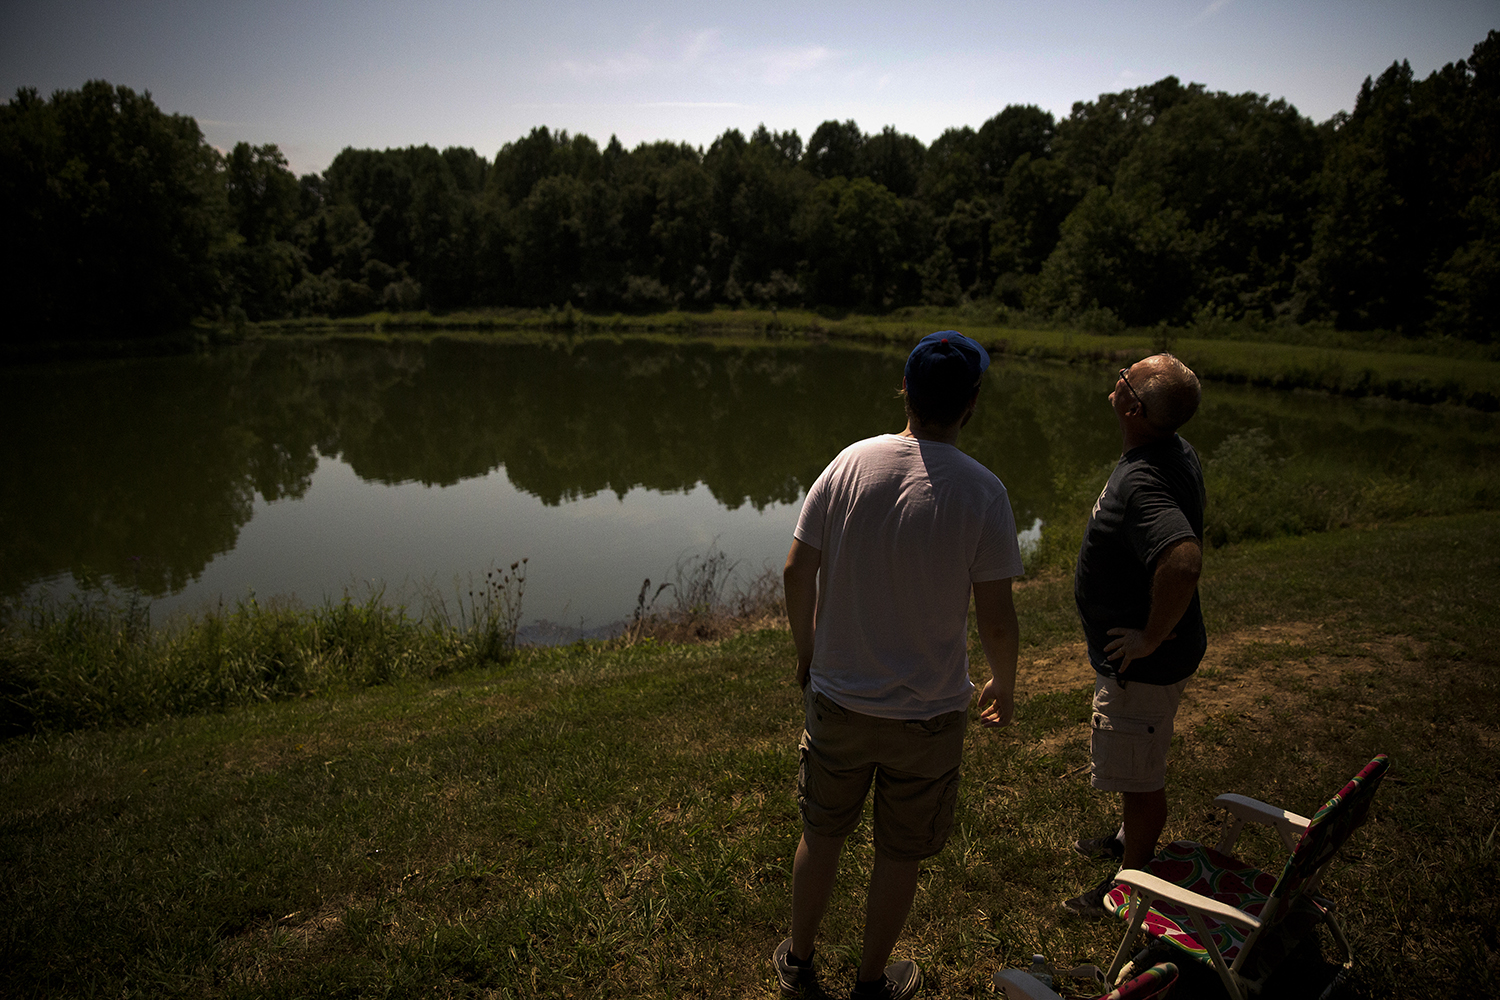 Jimmy Kowalczyk, left, and his dad, Dan, watch the eclipse during complete totality at Giant City State Park near Carbondale Aug. 21. Rich Saal/The State Journal-Register